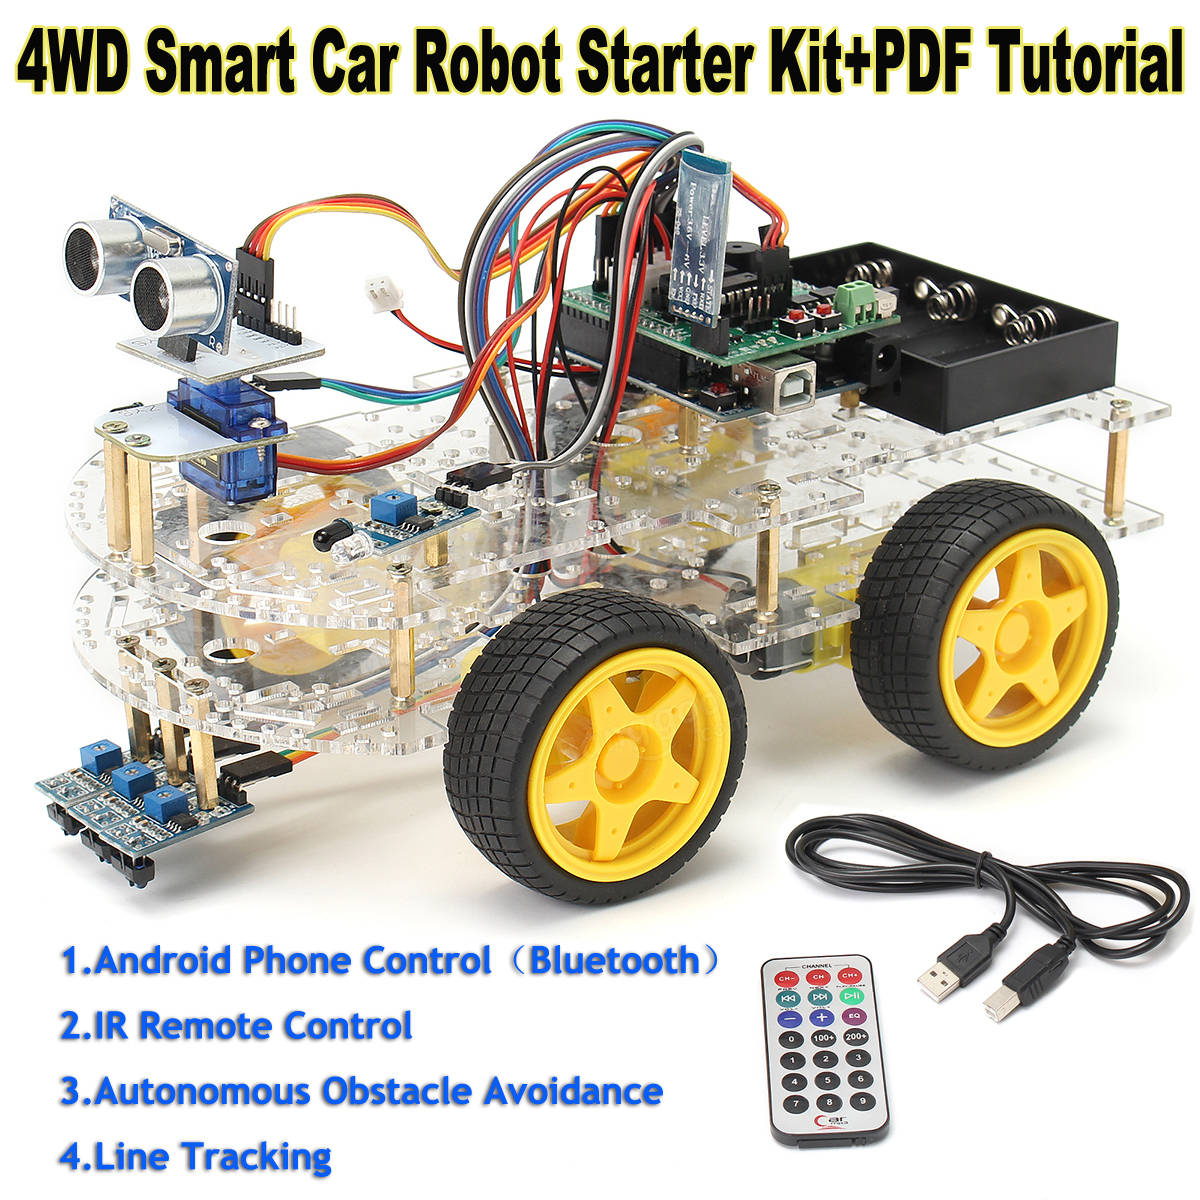 How to Make Your First Robot Using Arduino DIY